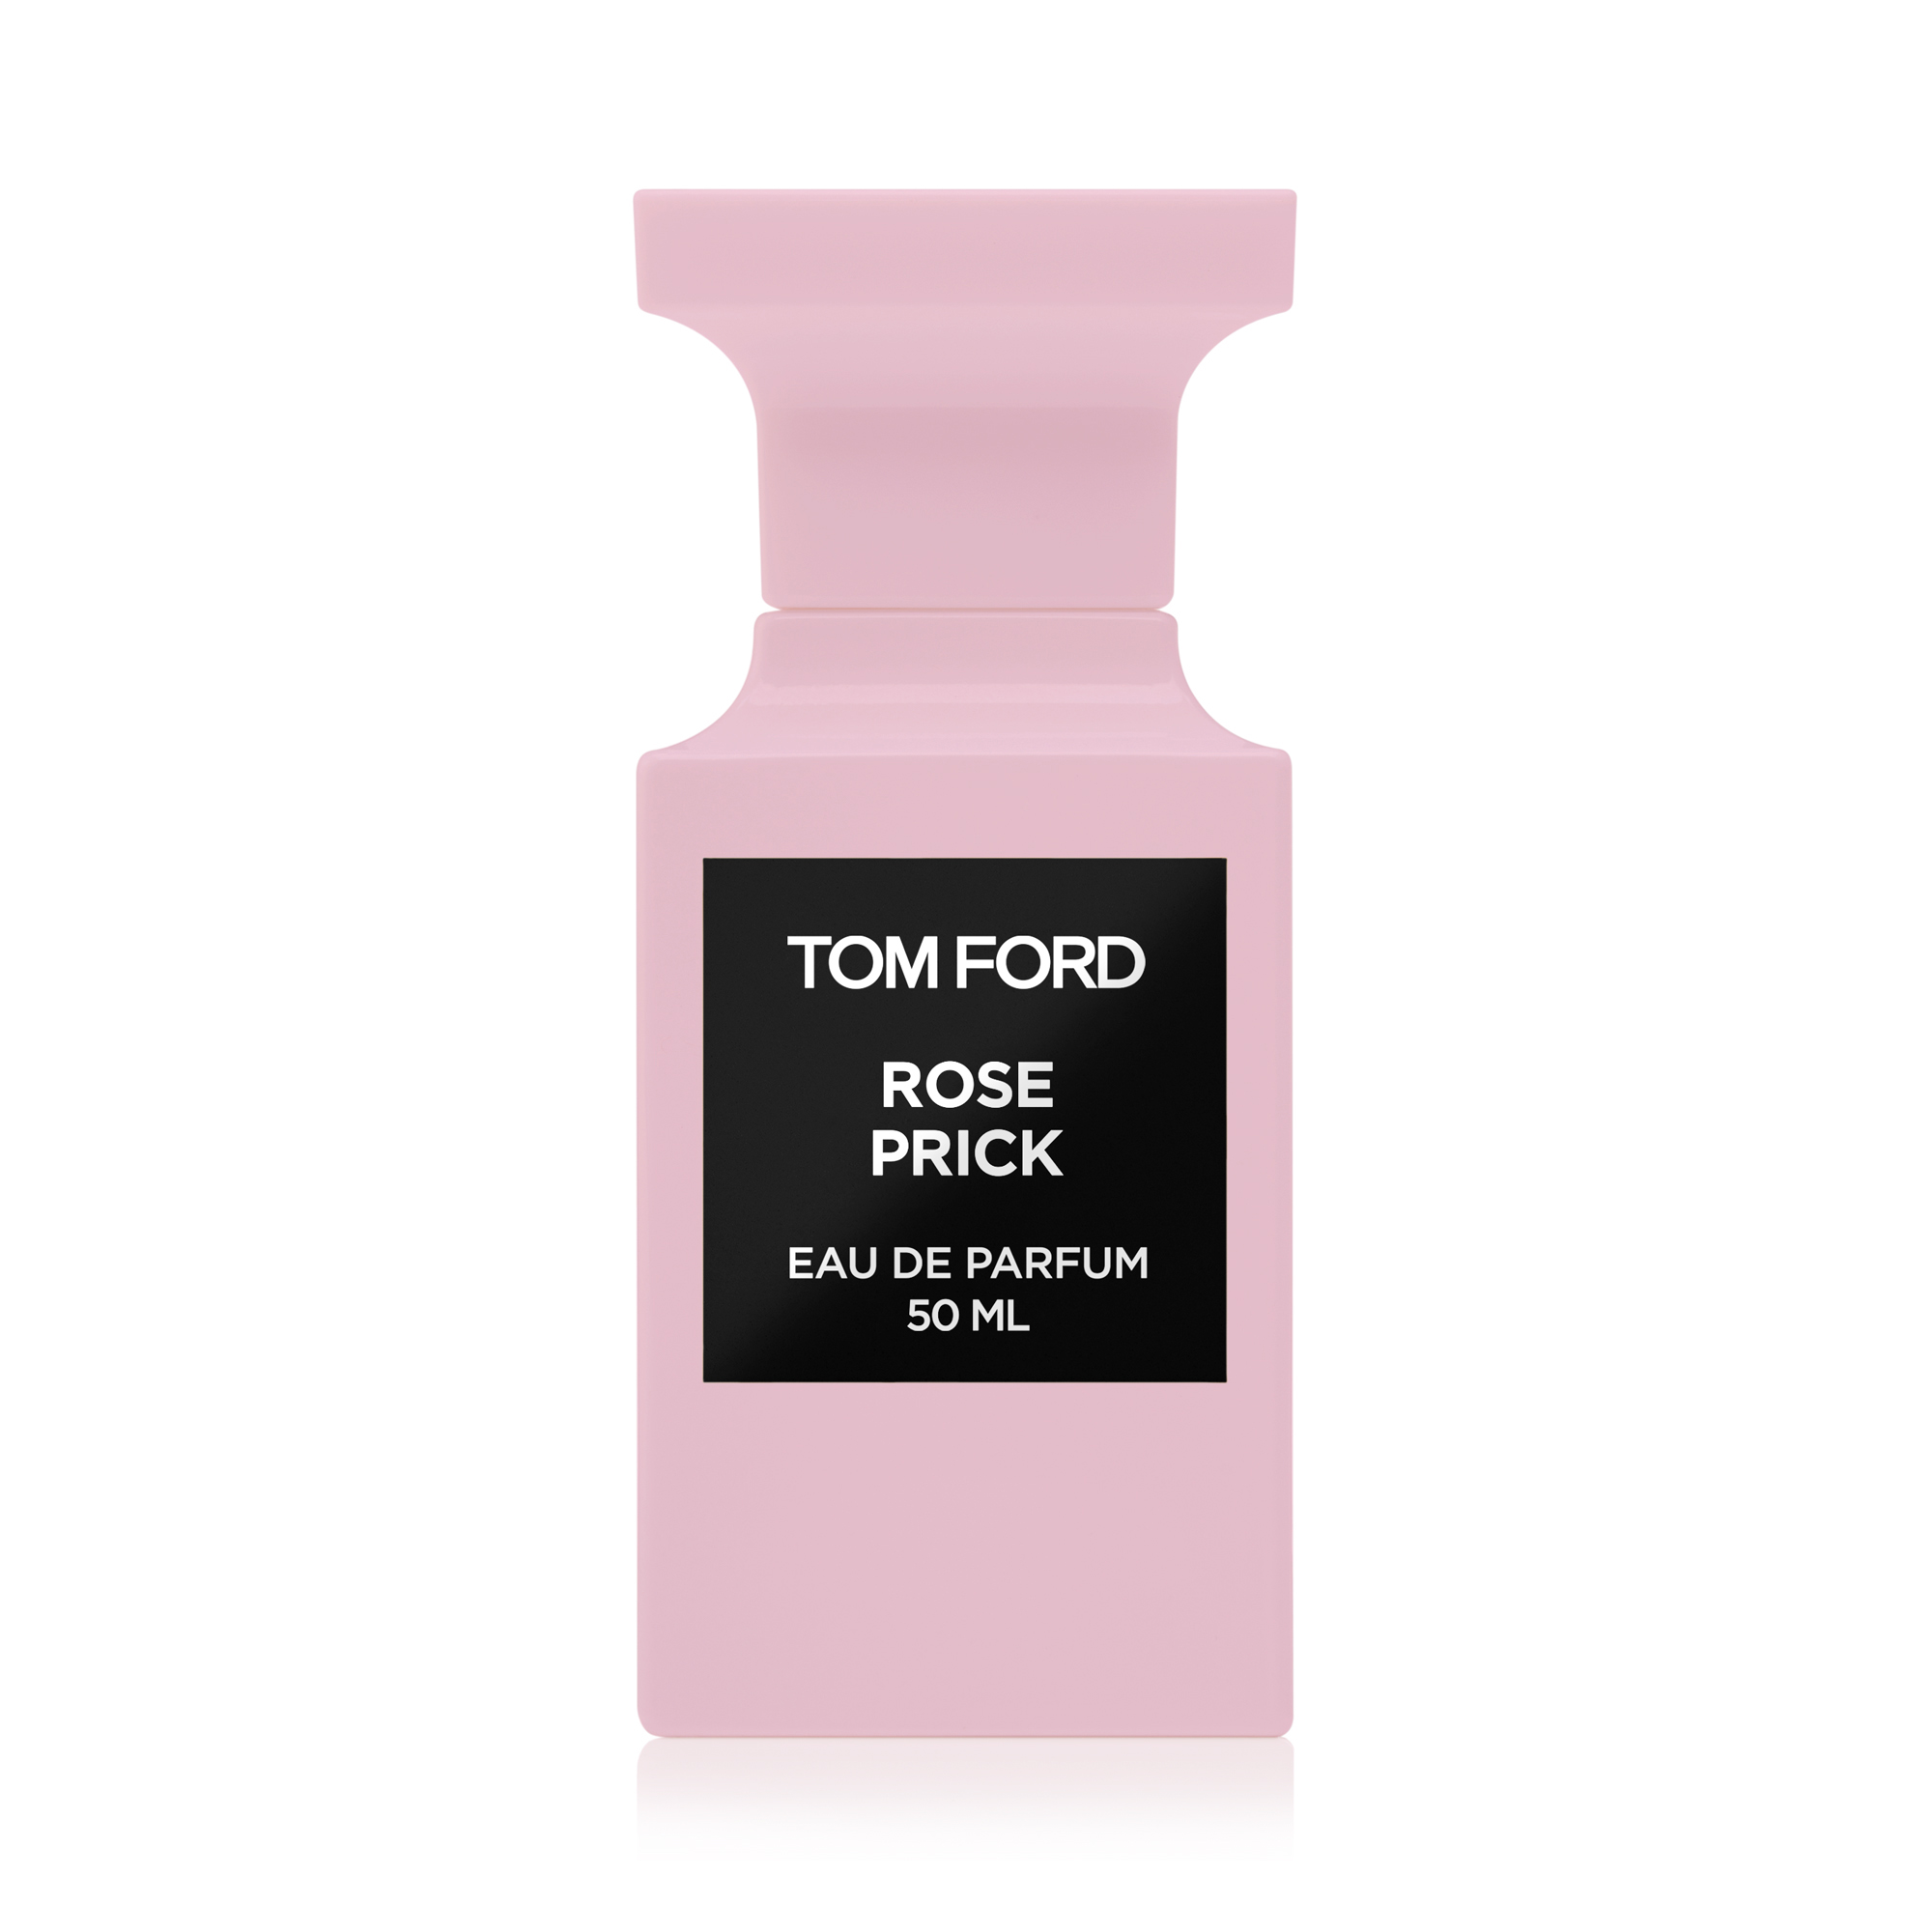 TF_ROSE PRICK_50 ML_S (1)